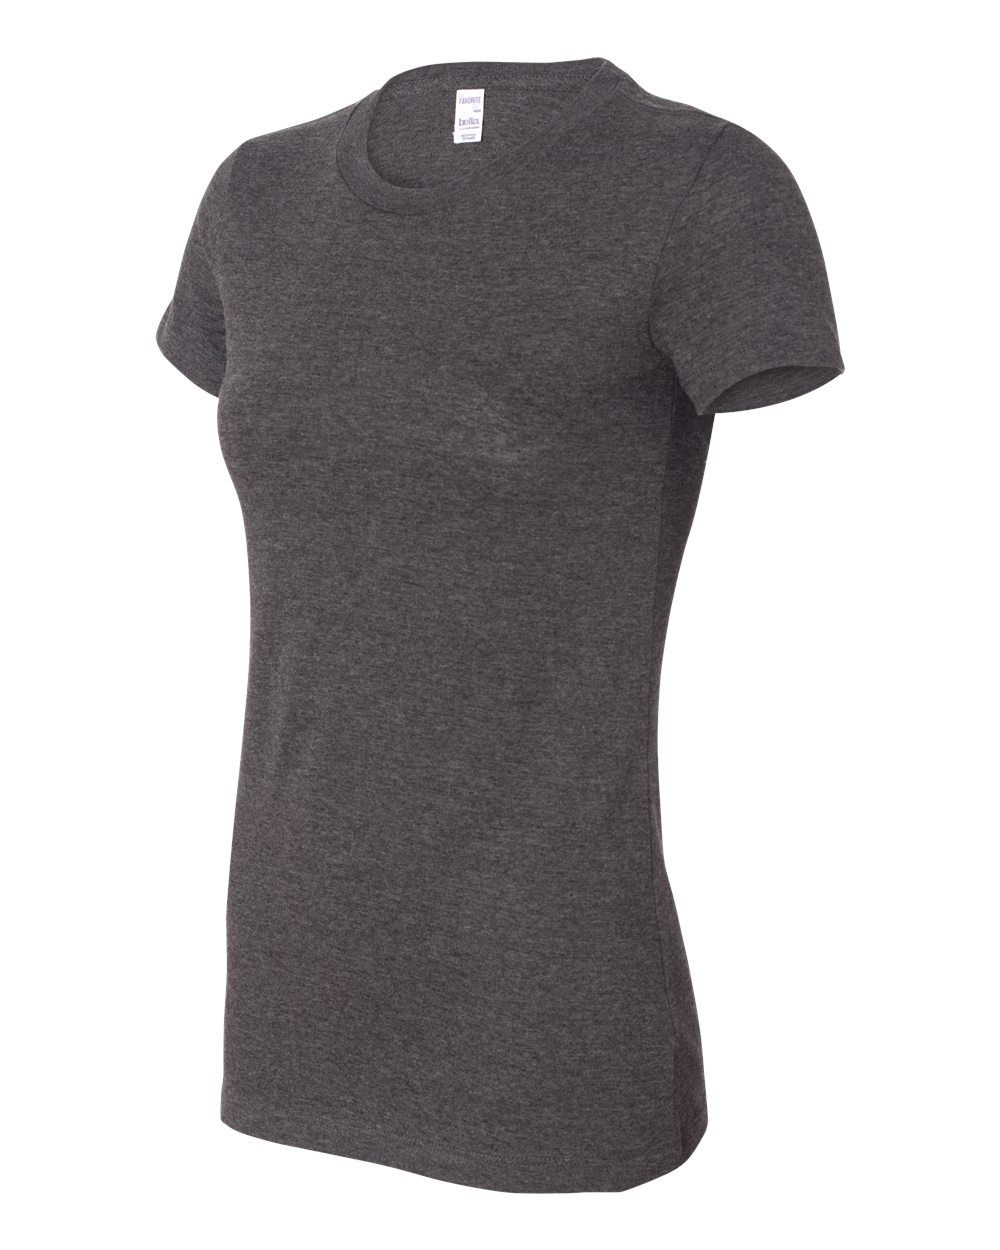 Bella-Canvas-Womens-The-Favorite-T-Shirt-6004-Size-S-2XL thumbnail 49